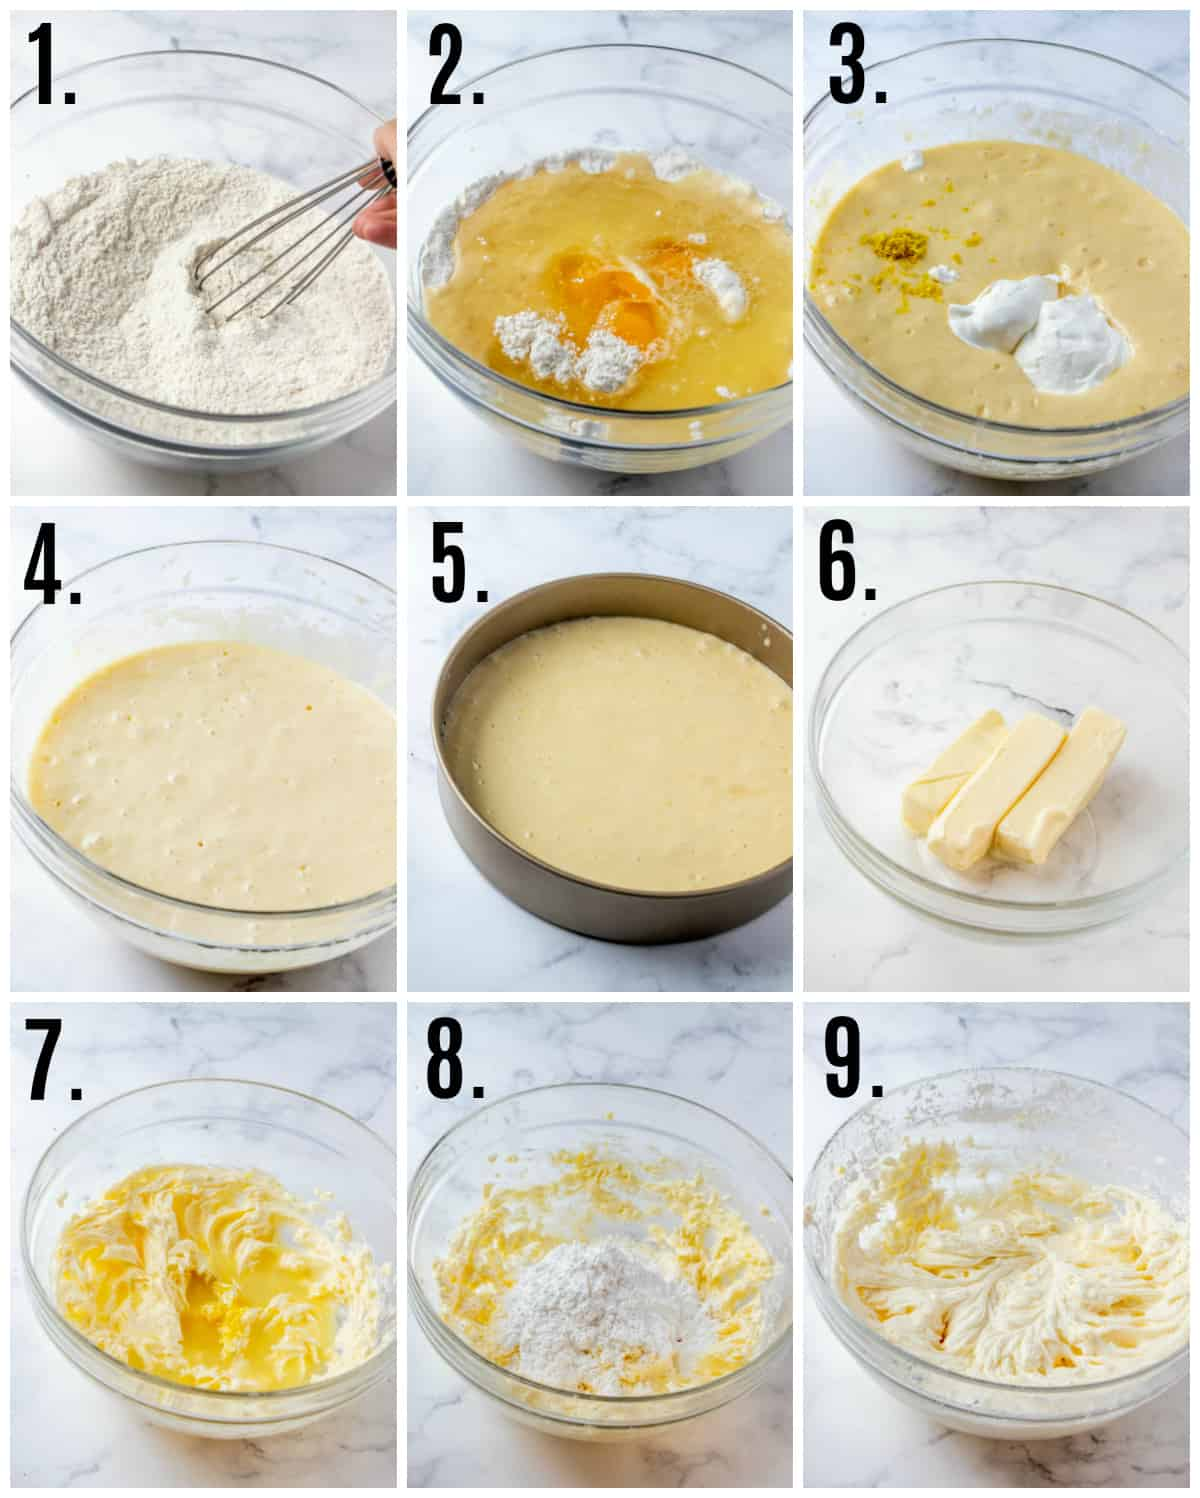 Step by step photos on how to make Lemon Layer Cake